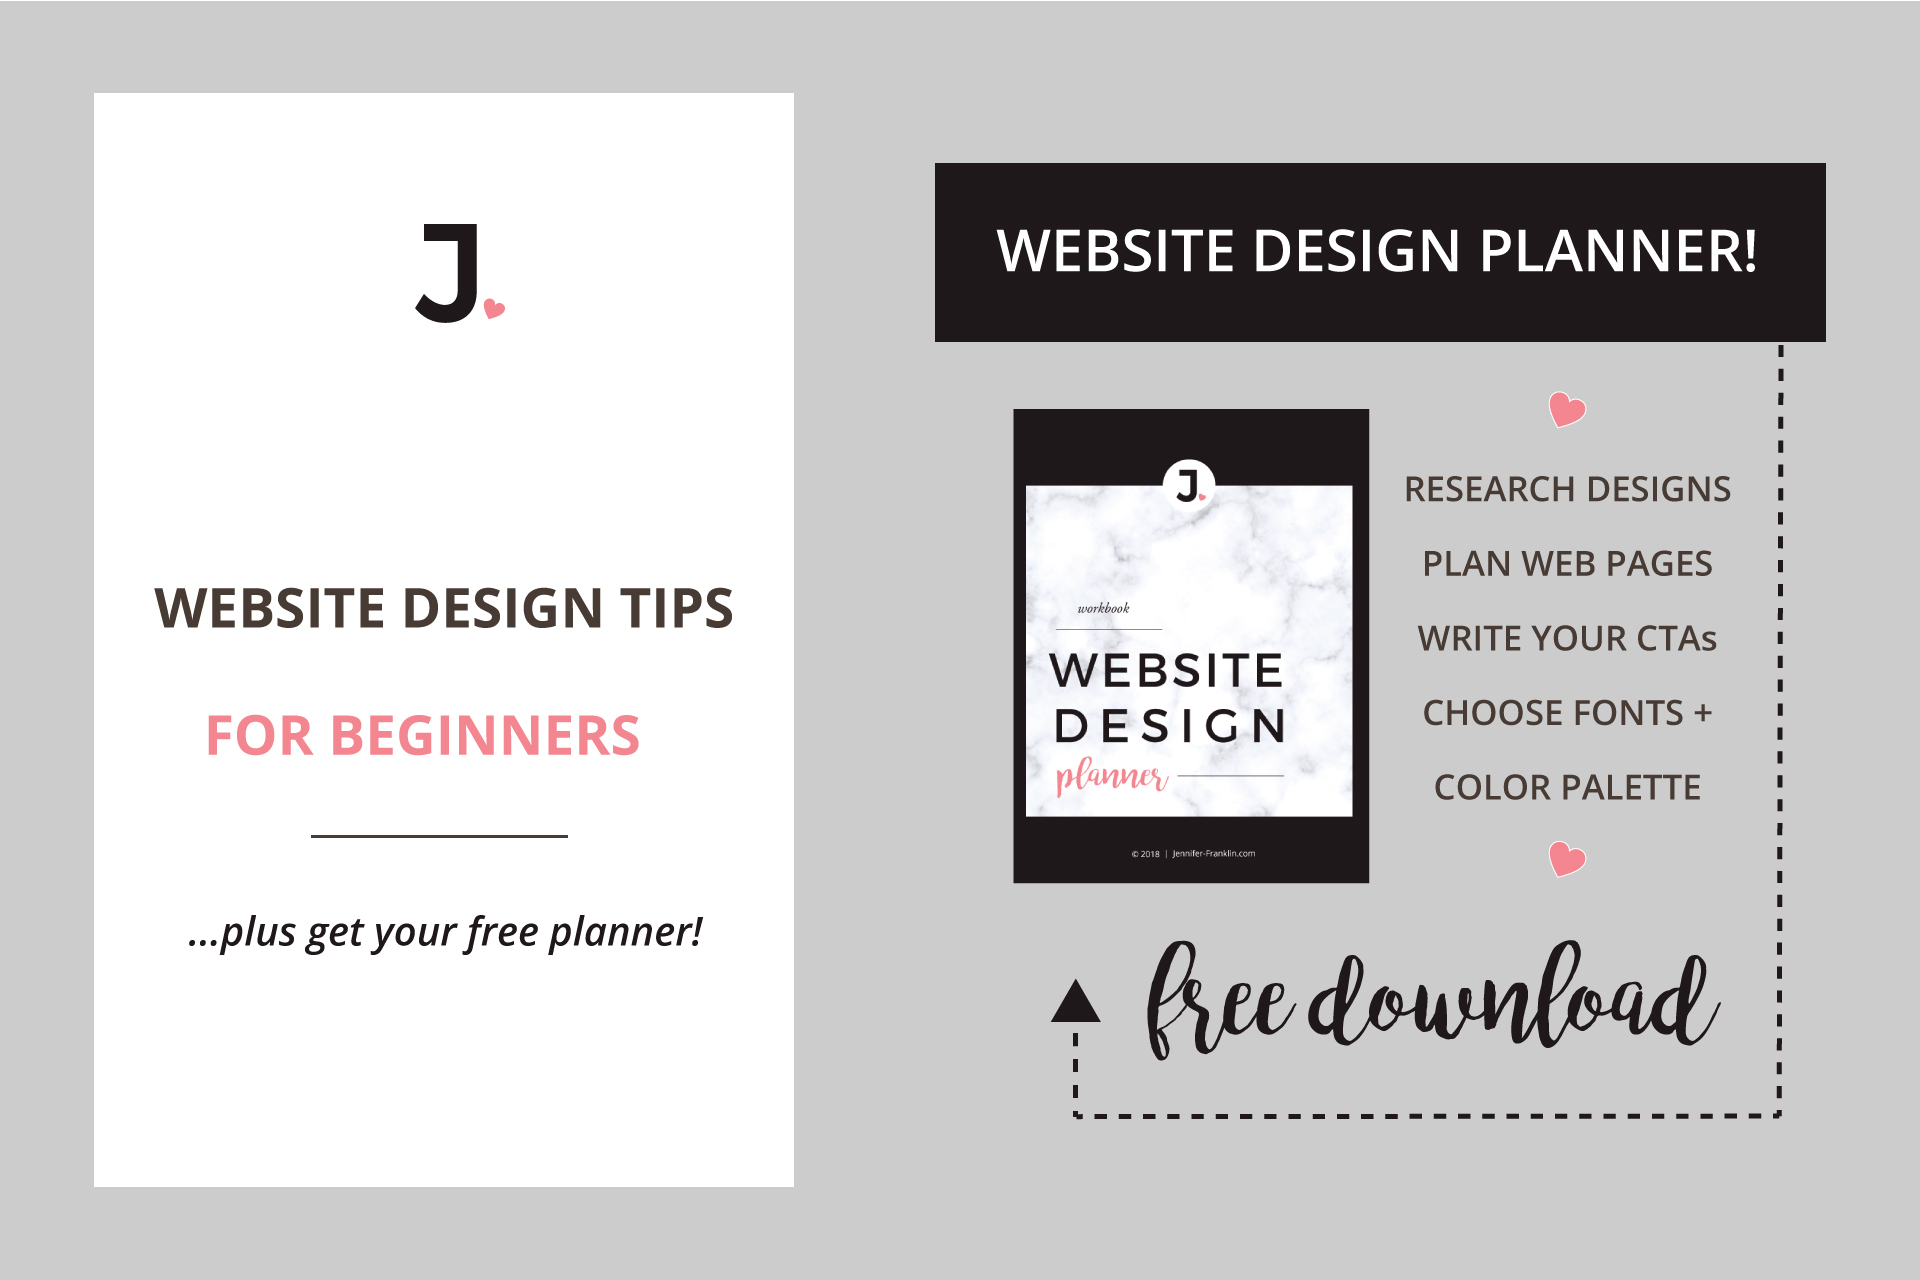 Website Design Tips For Beginners | Website Font Combinations | Website Design Planner | Free Download | Jennifer-Franklin.com